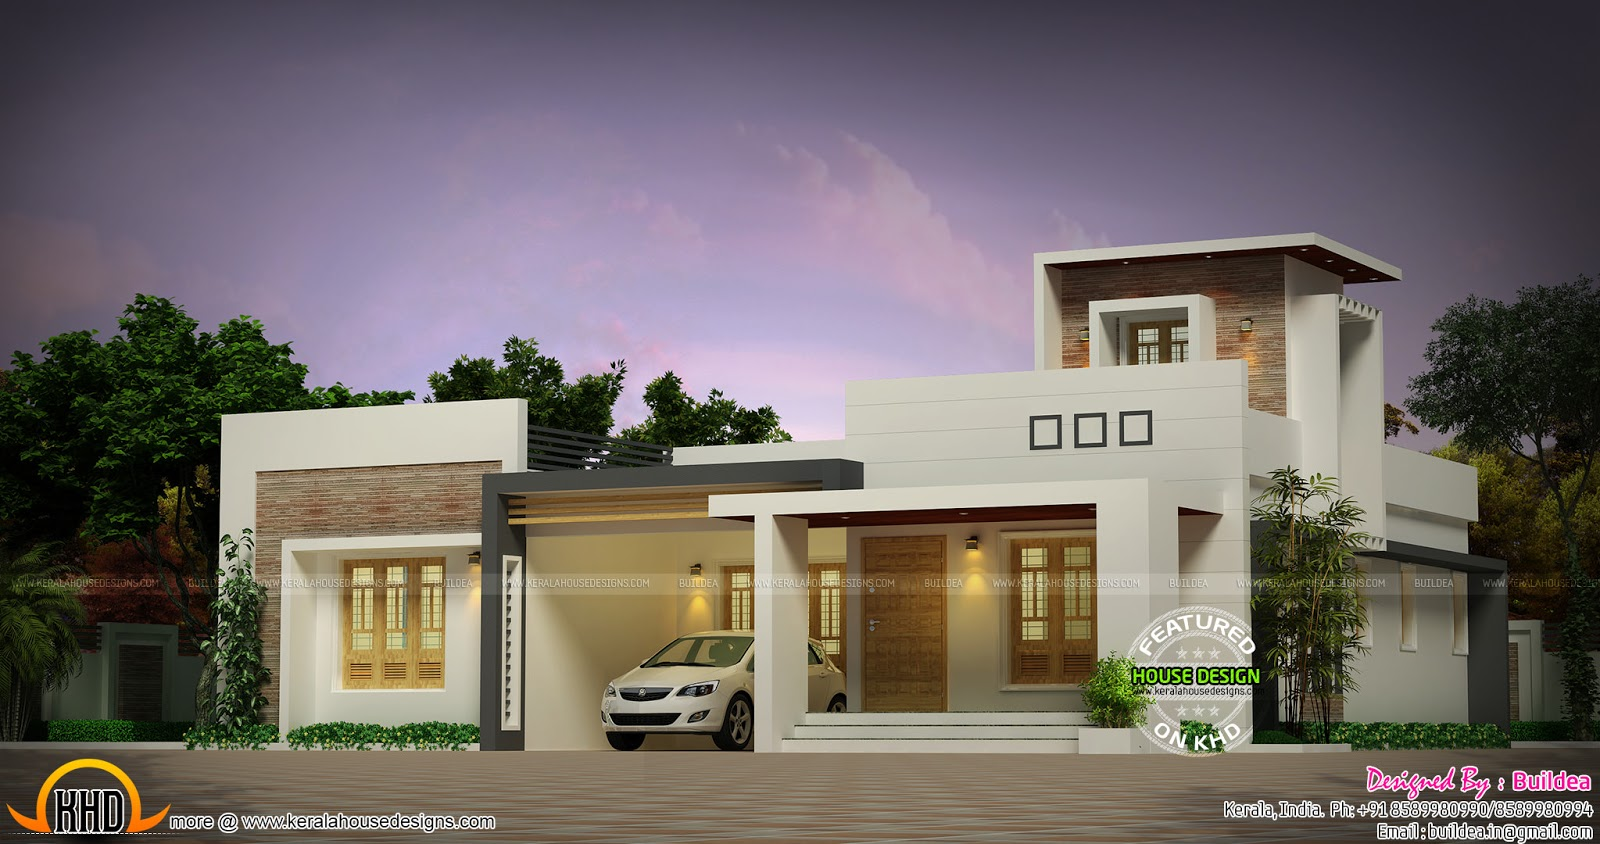 1572 sq ft 2 bedroom one floor home kerala home design for One floor house images